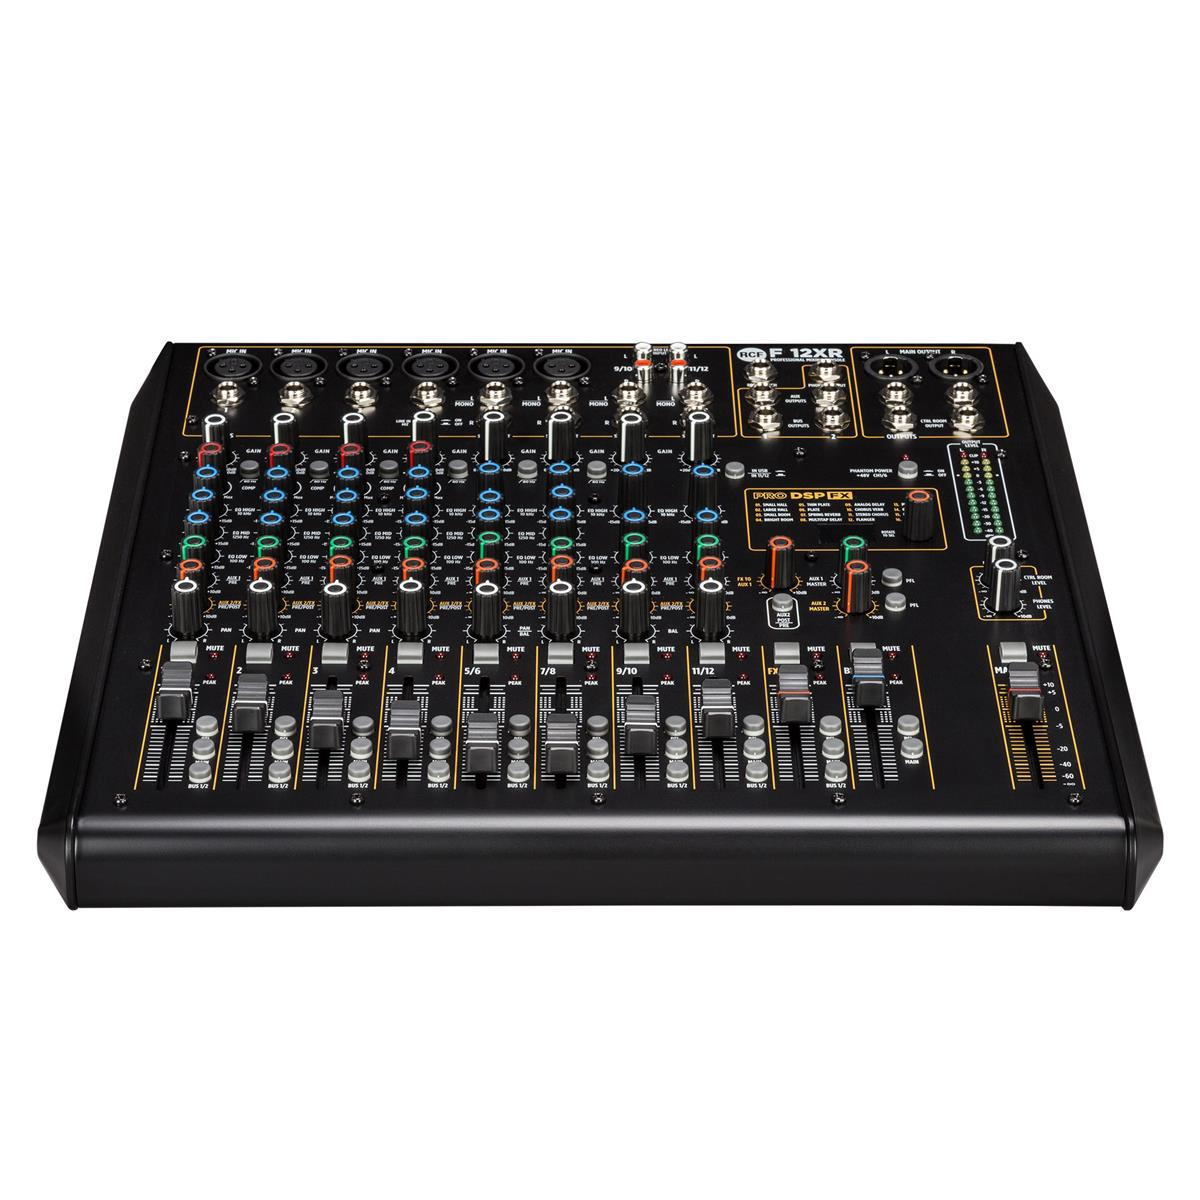 RCF F 12XR 90-240V 12 channel mixing console with multi-FX &